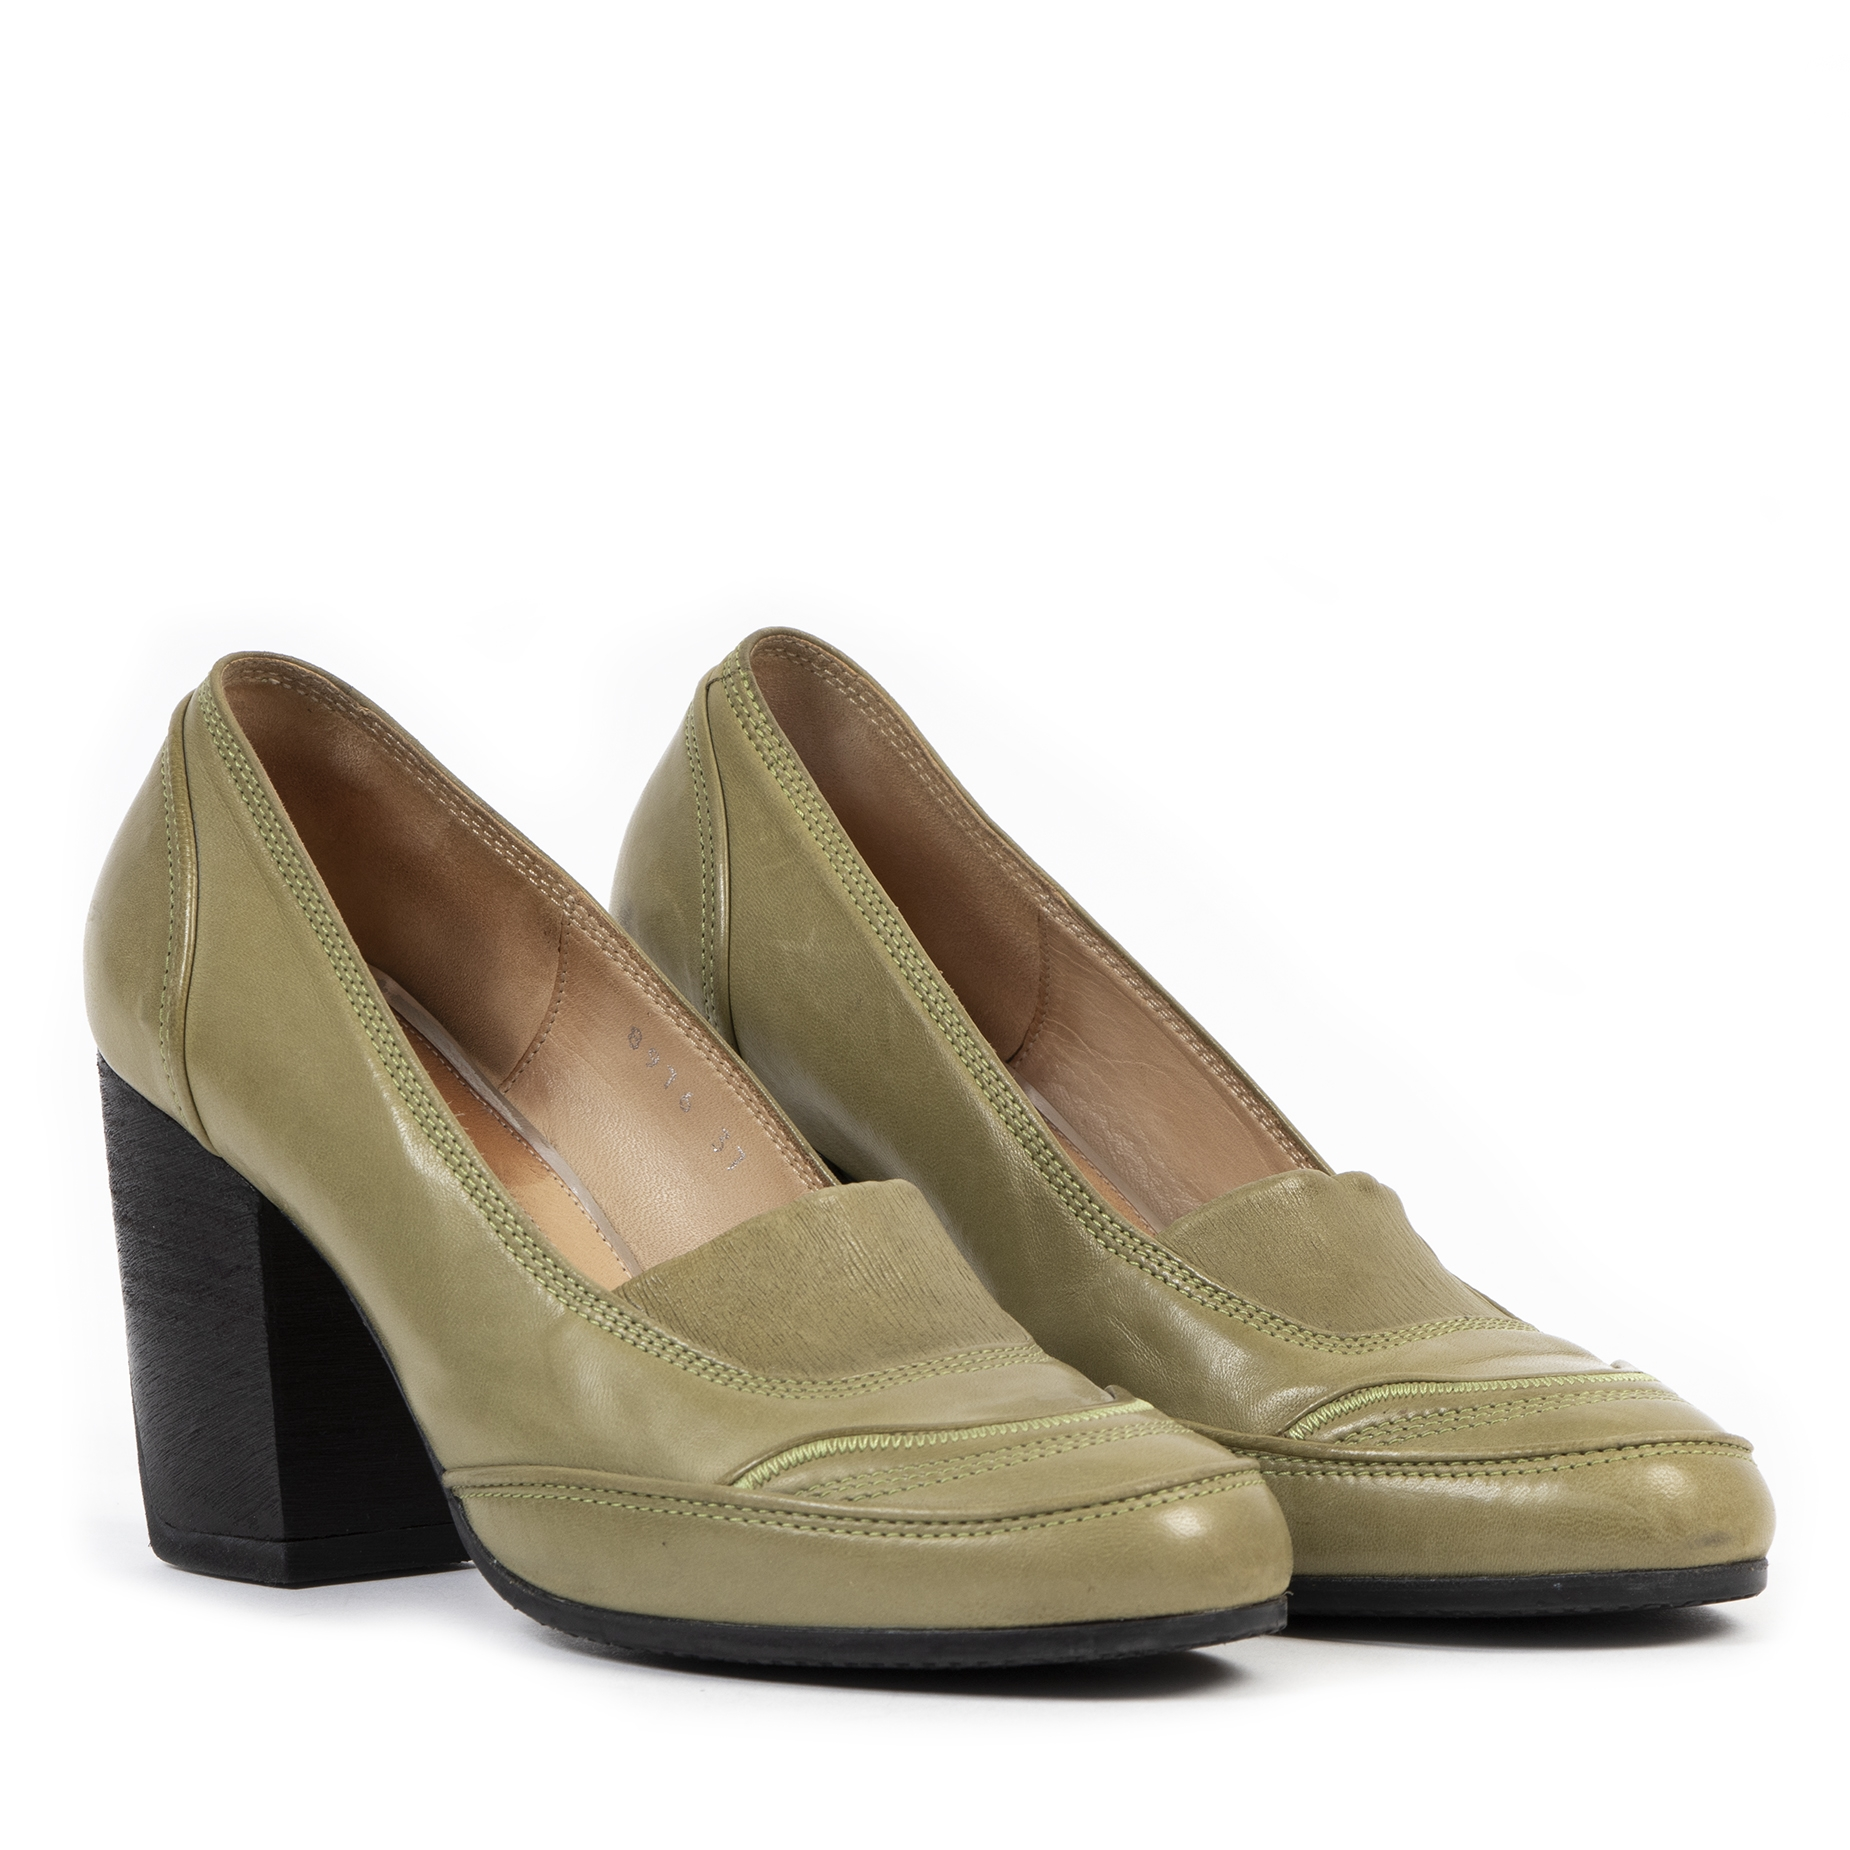 Authentic secondhand Dries Van Noten Light Green Leather Pumps - Size 37 designer shoes luxury vintage webshop safe secure online shopping